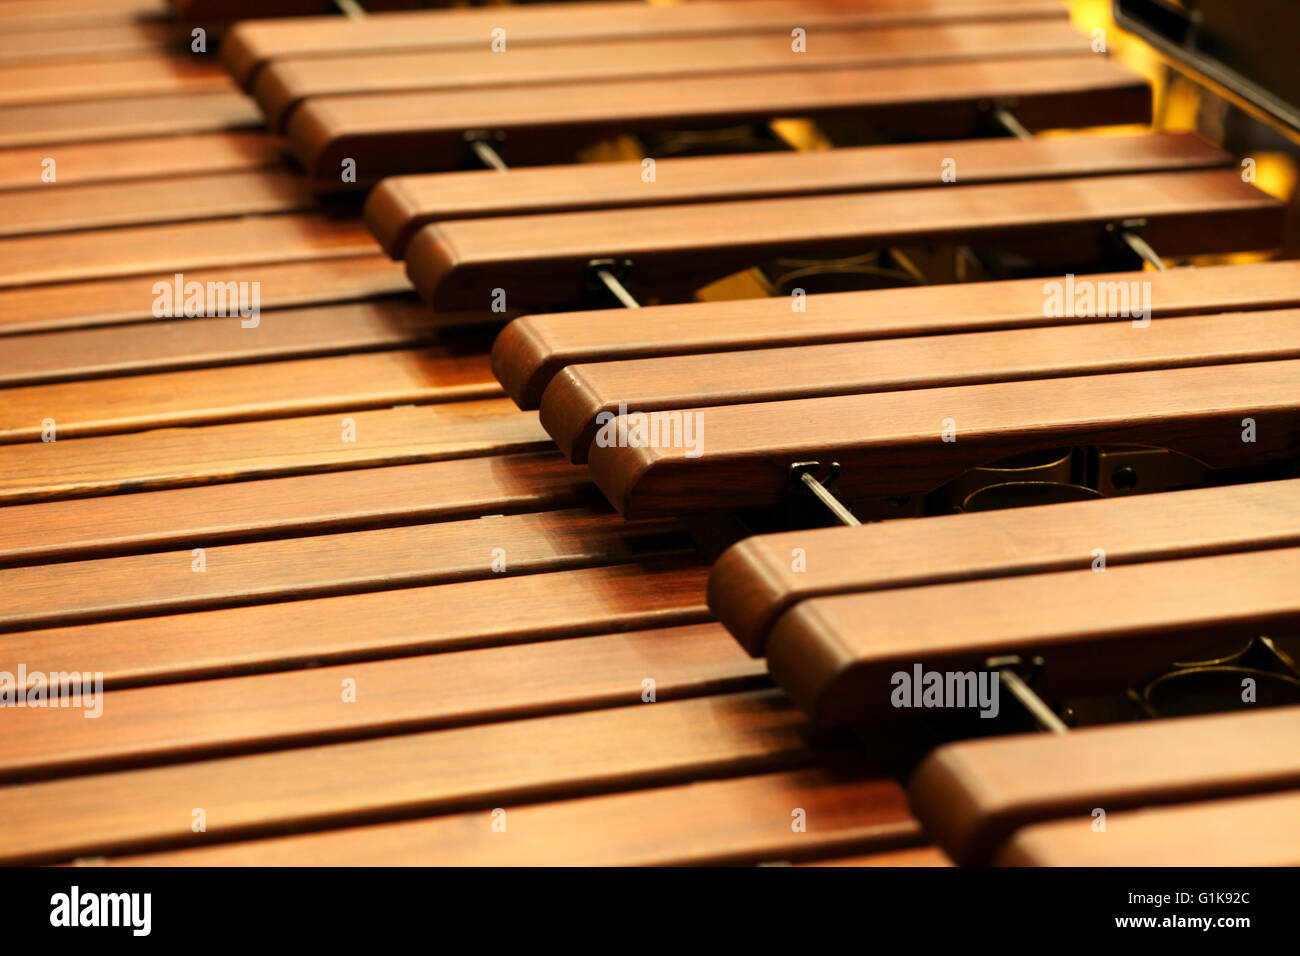 how to make a marimba musical instrument